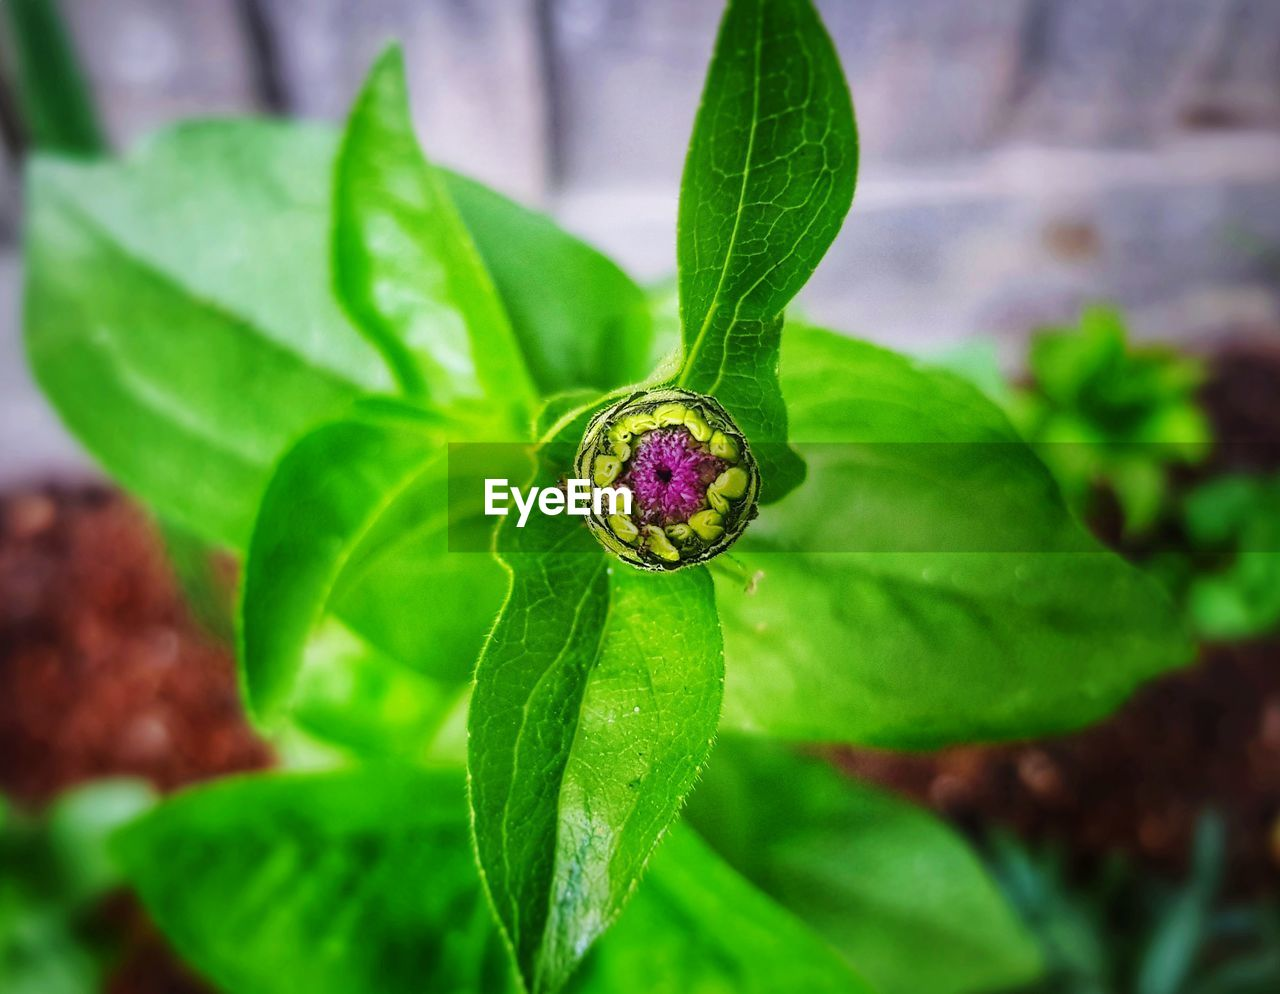 leaf, plant part, close-up, plant, growth, green color, beauty in nature, focus on foreground, nature, one animal, day, flower, no people, freshness, vulnerability, animal themes, fragility, invertebrate, animal wildlife, flowering plant, flower head